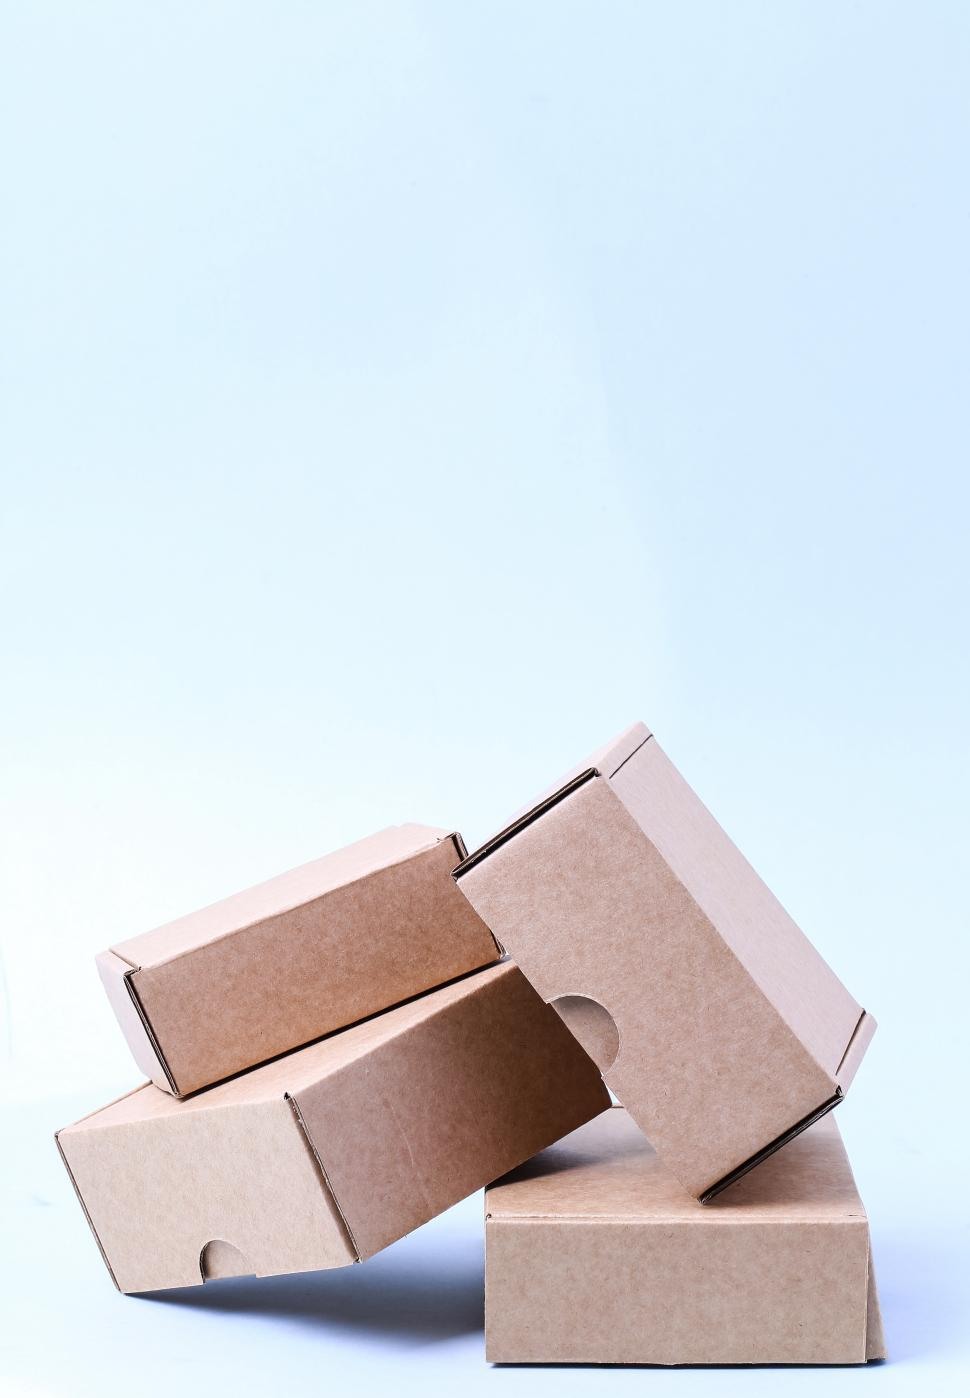 Download Free Stock Photo of Pile of cardboard boxes